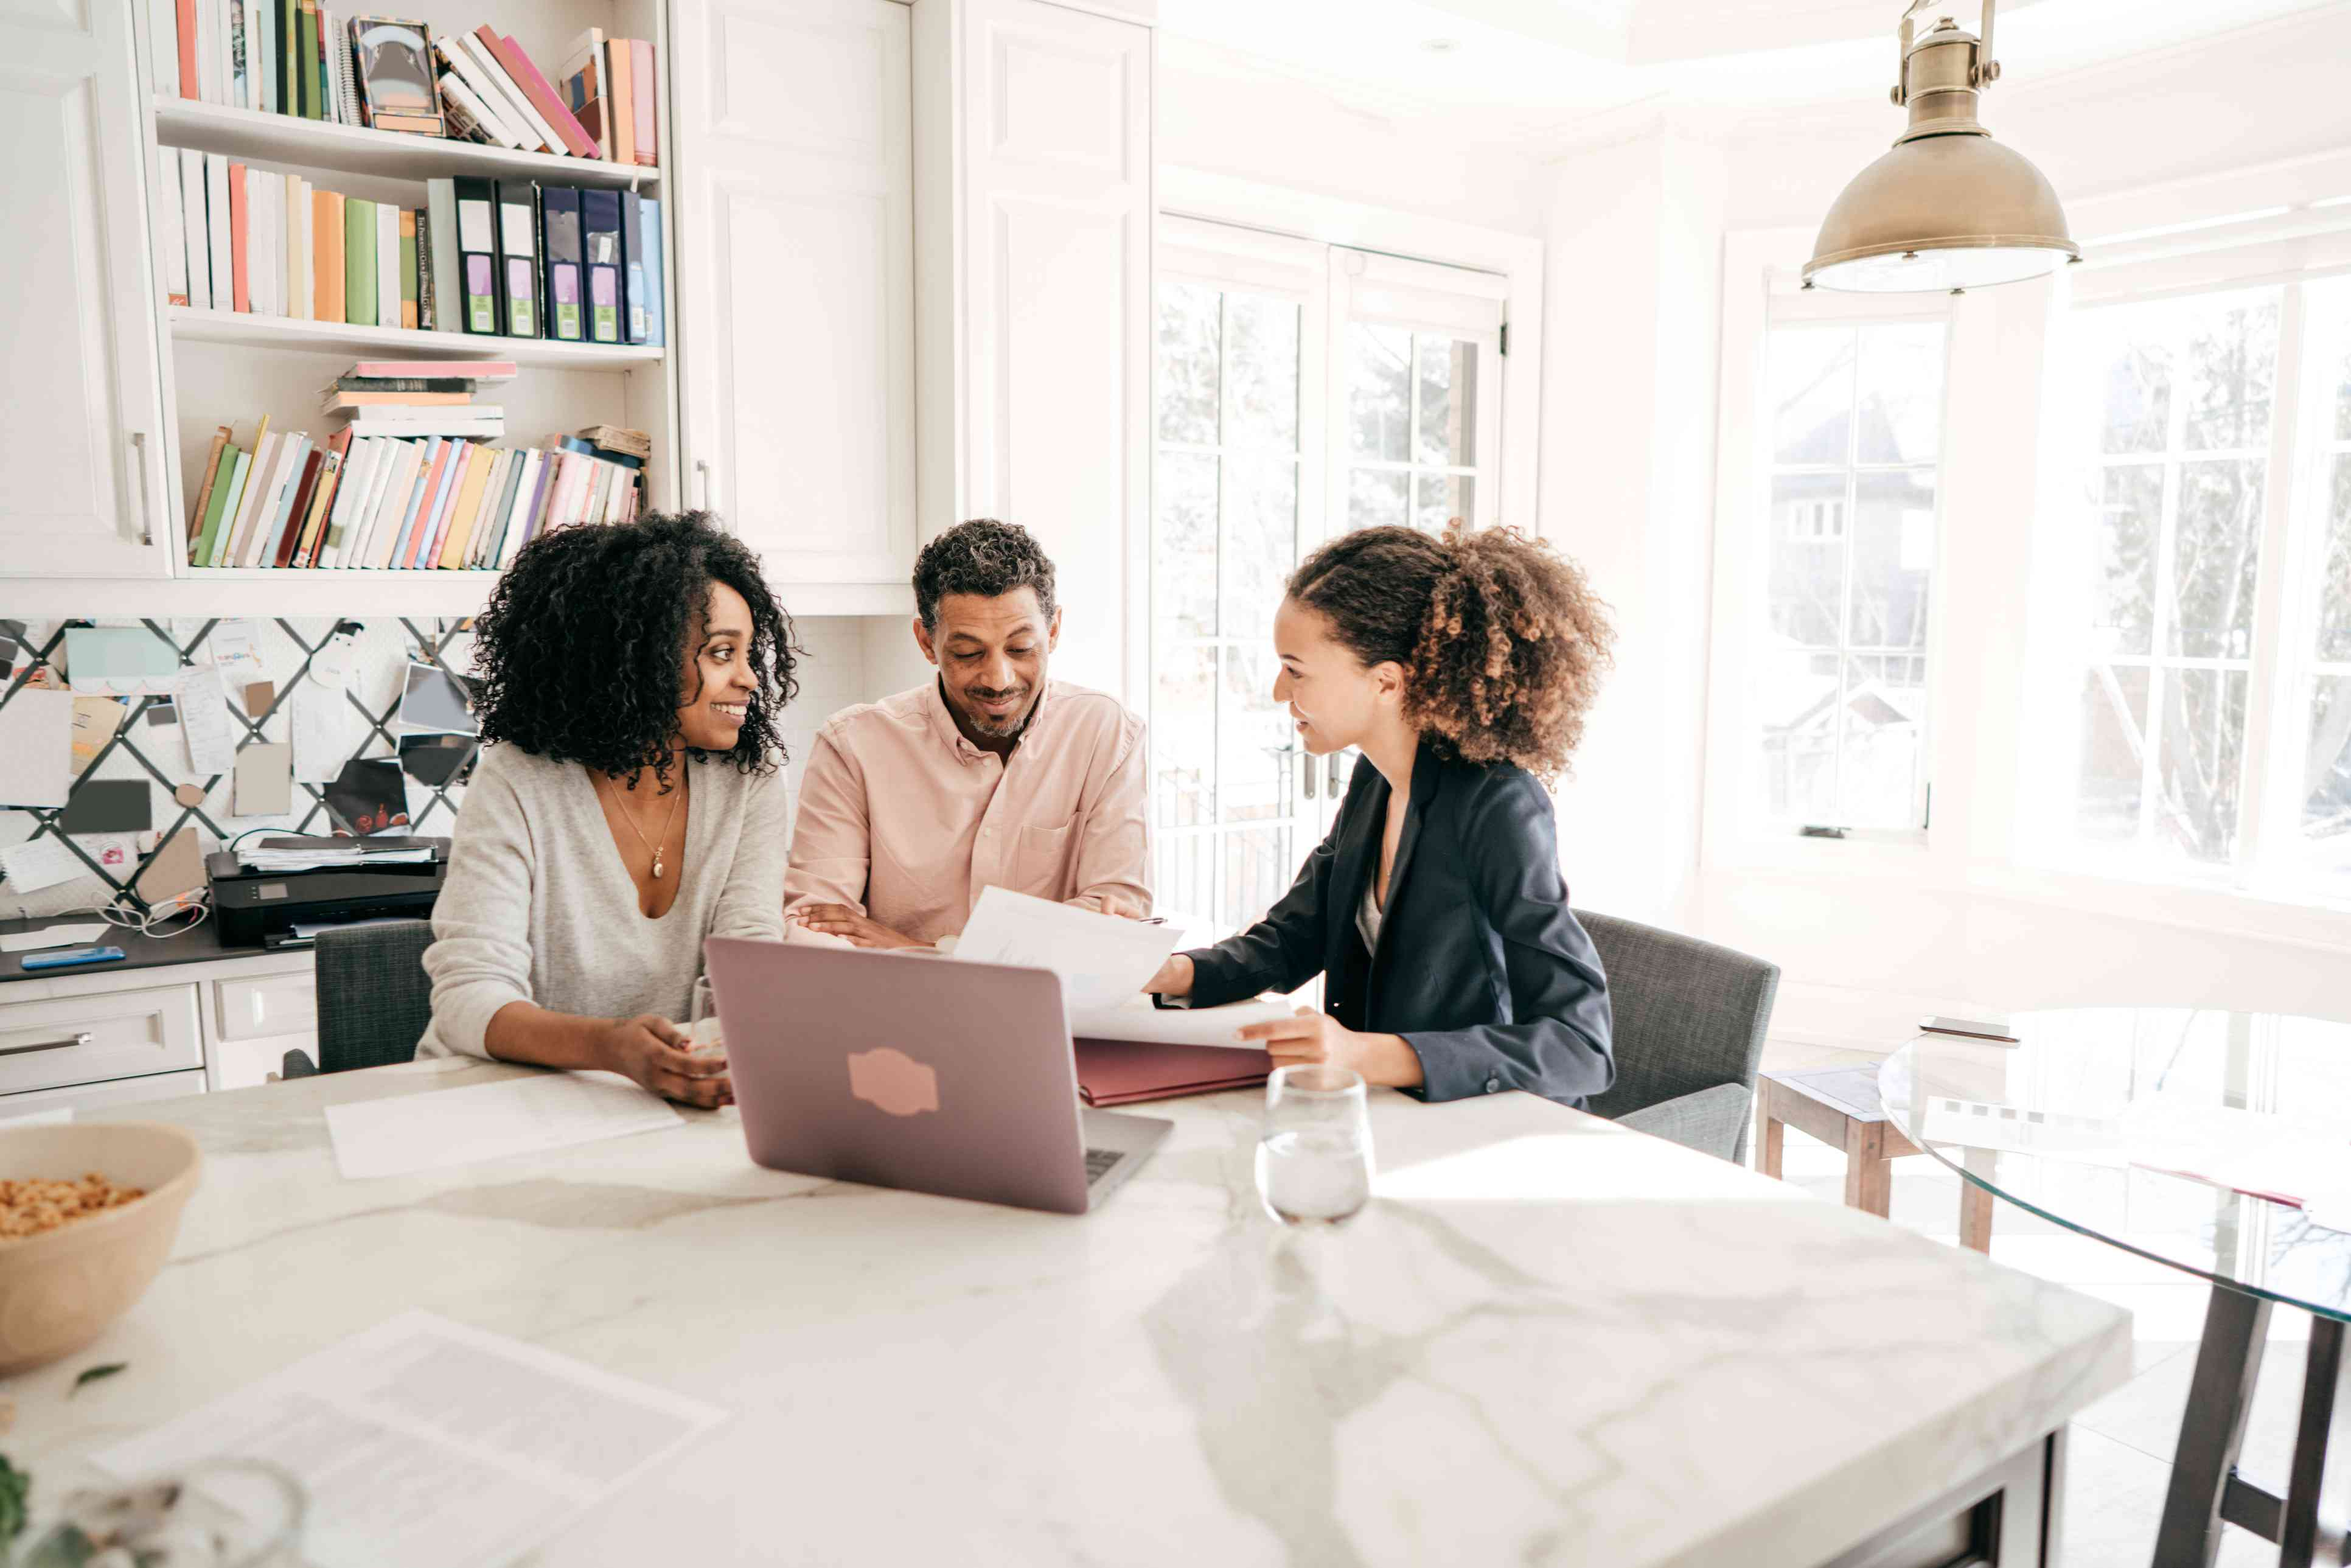 Entrepreneurs evaluating tax forms with a professional